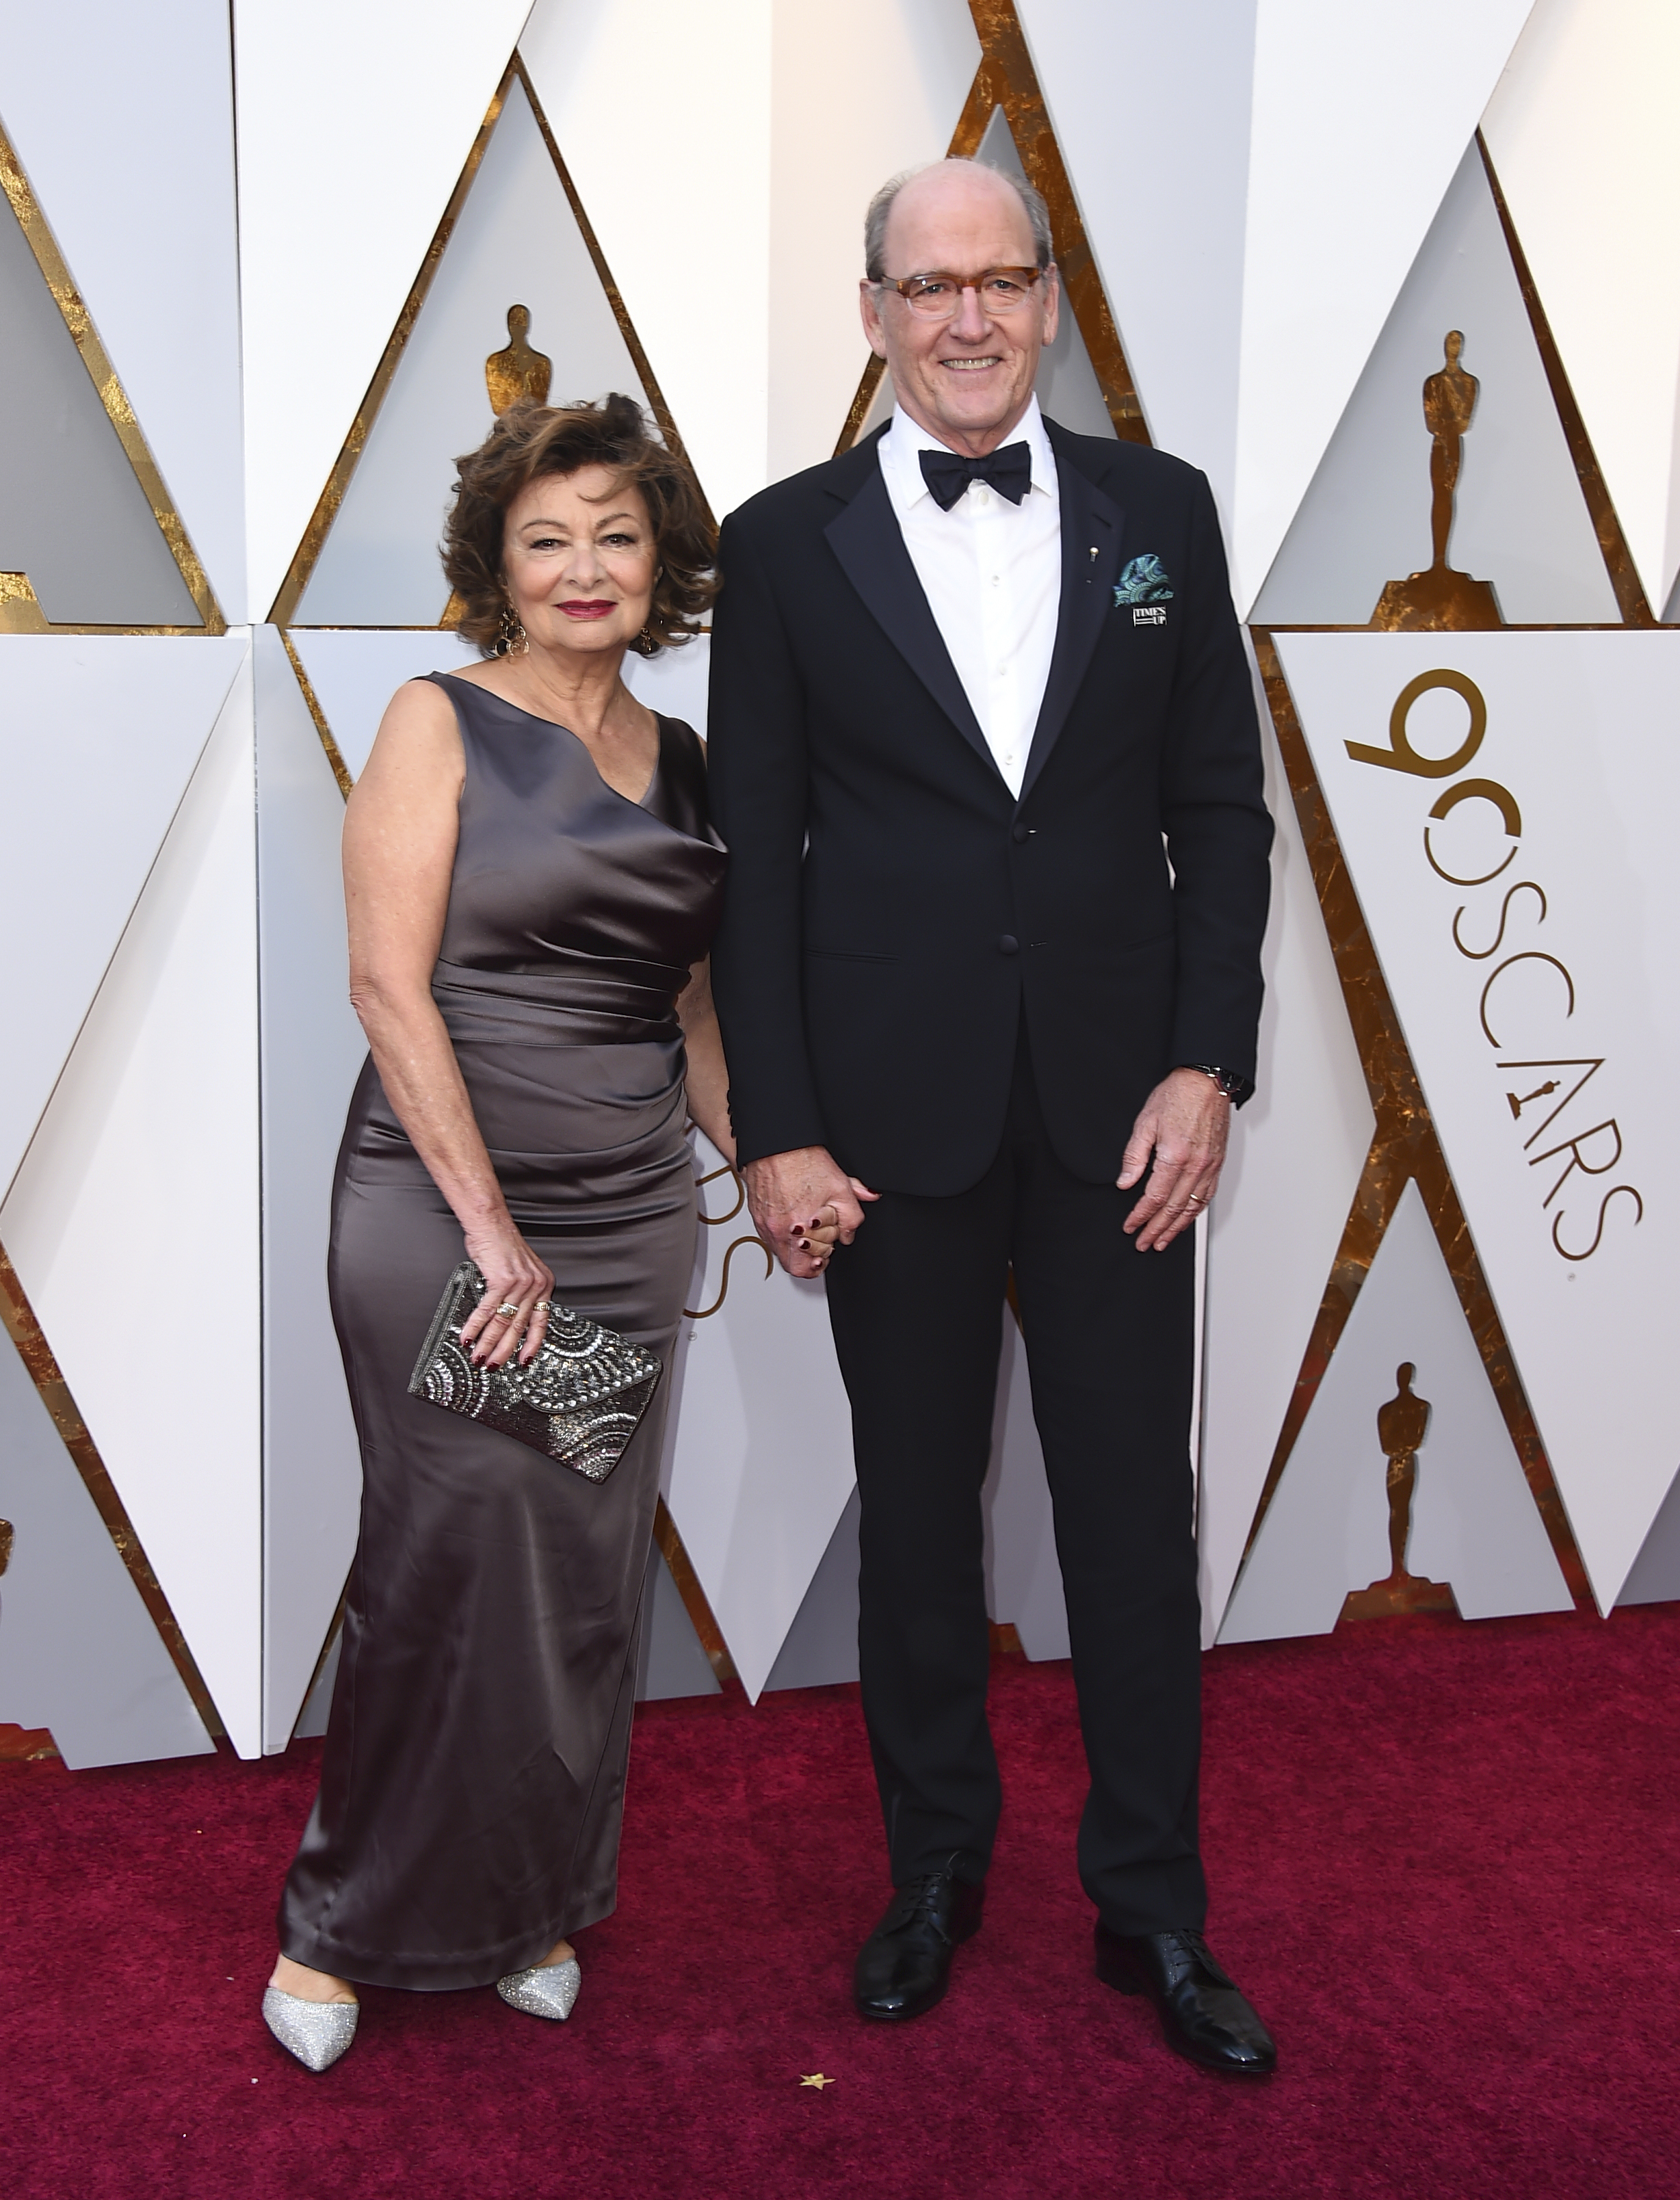 "<div class=""meta image-caption""><div class=""origin-logo origin-image none""><span>none</span></div><span class=""caption-text"">Sharon R. Friedrick, left, and Richard Jenkins arrive at the Oscars on Sunday, March 4, 2018, at the Dolby Theatre in Los Angeles. (Jordan Strauss/Invision/AP)</span></div>"